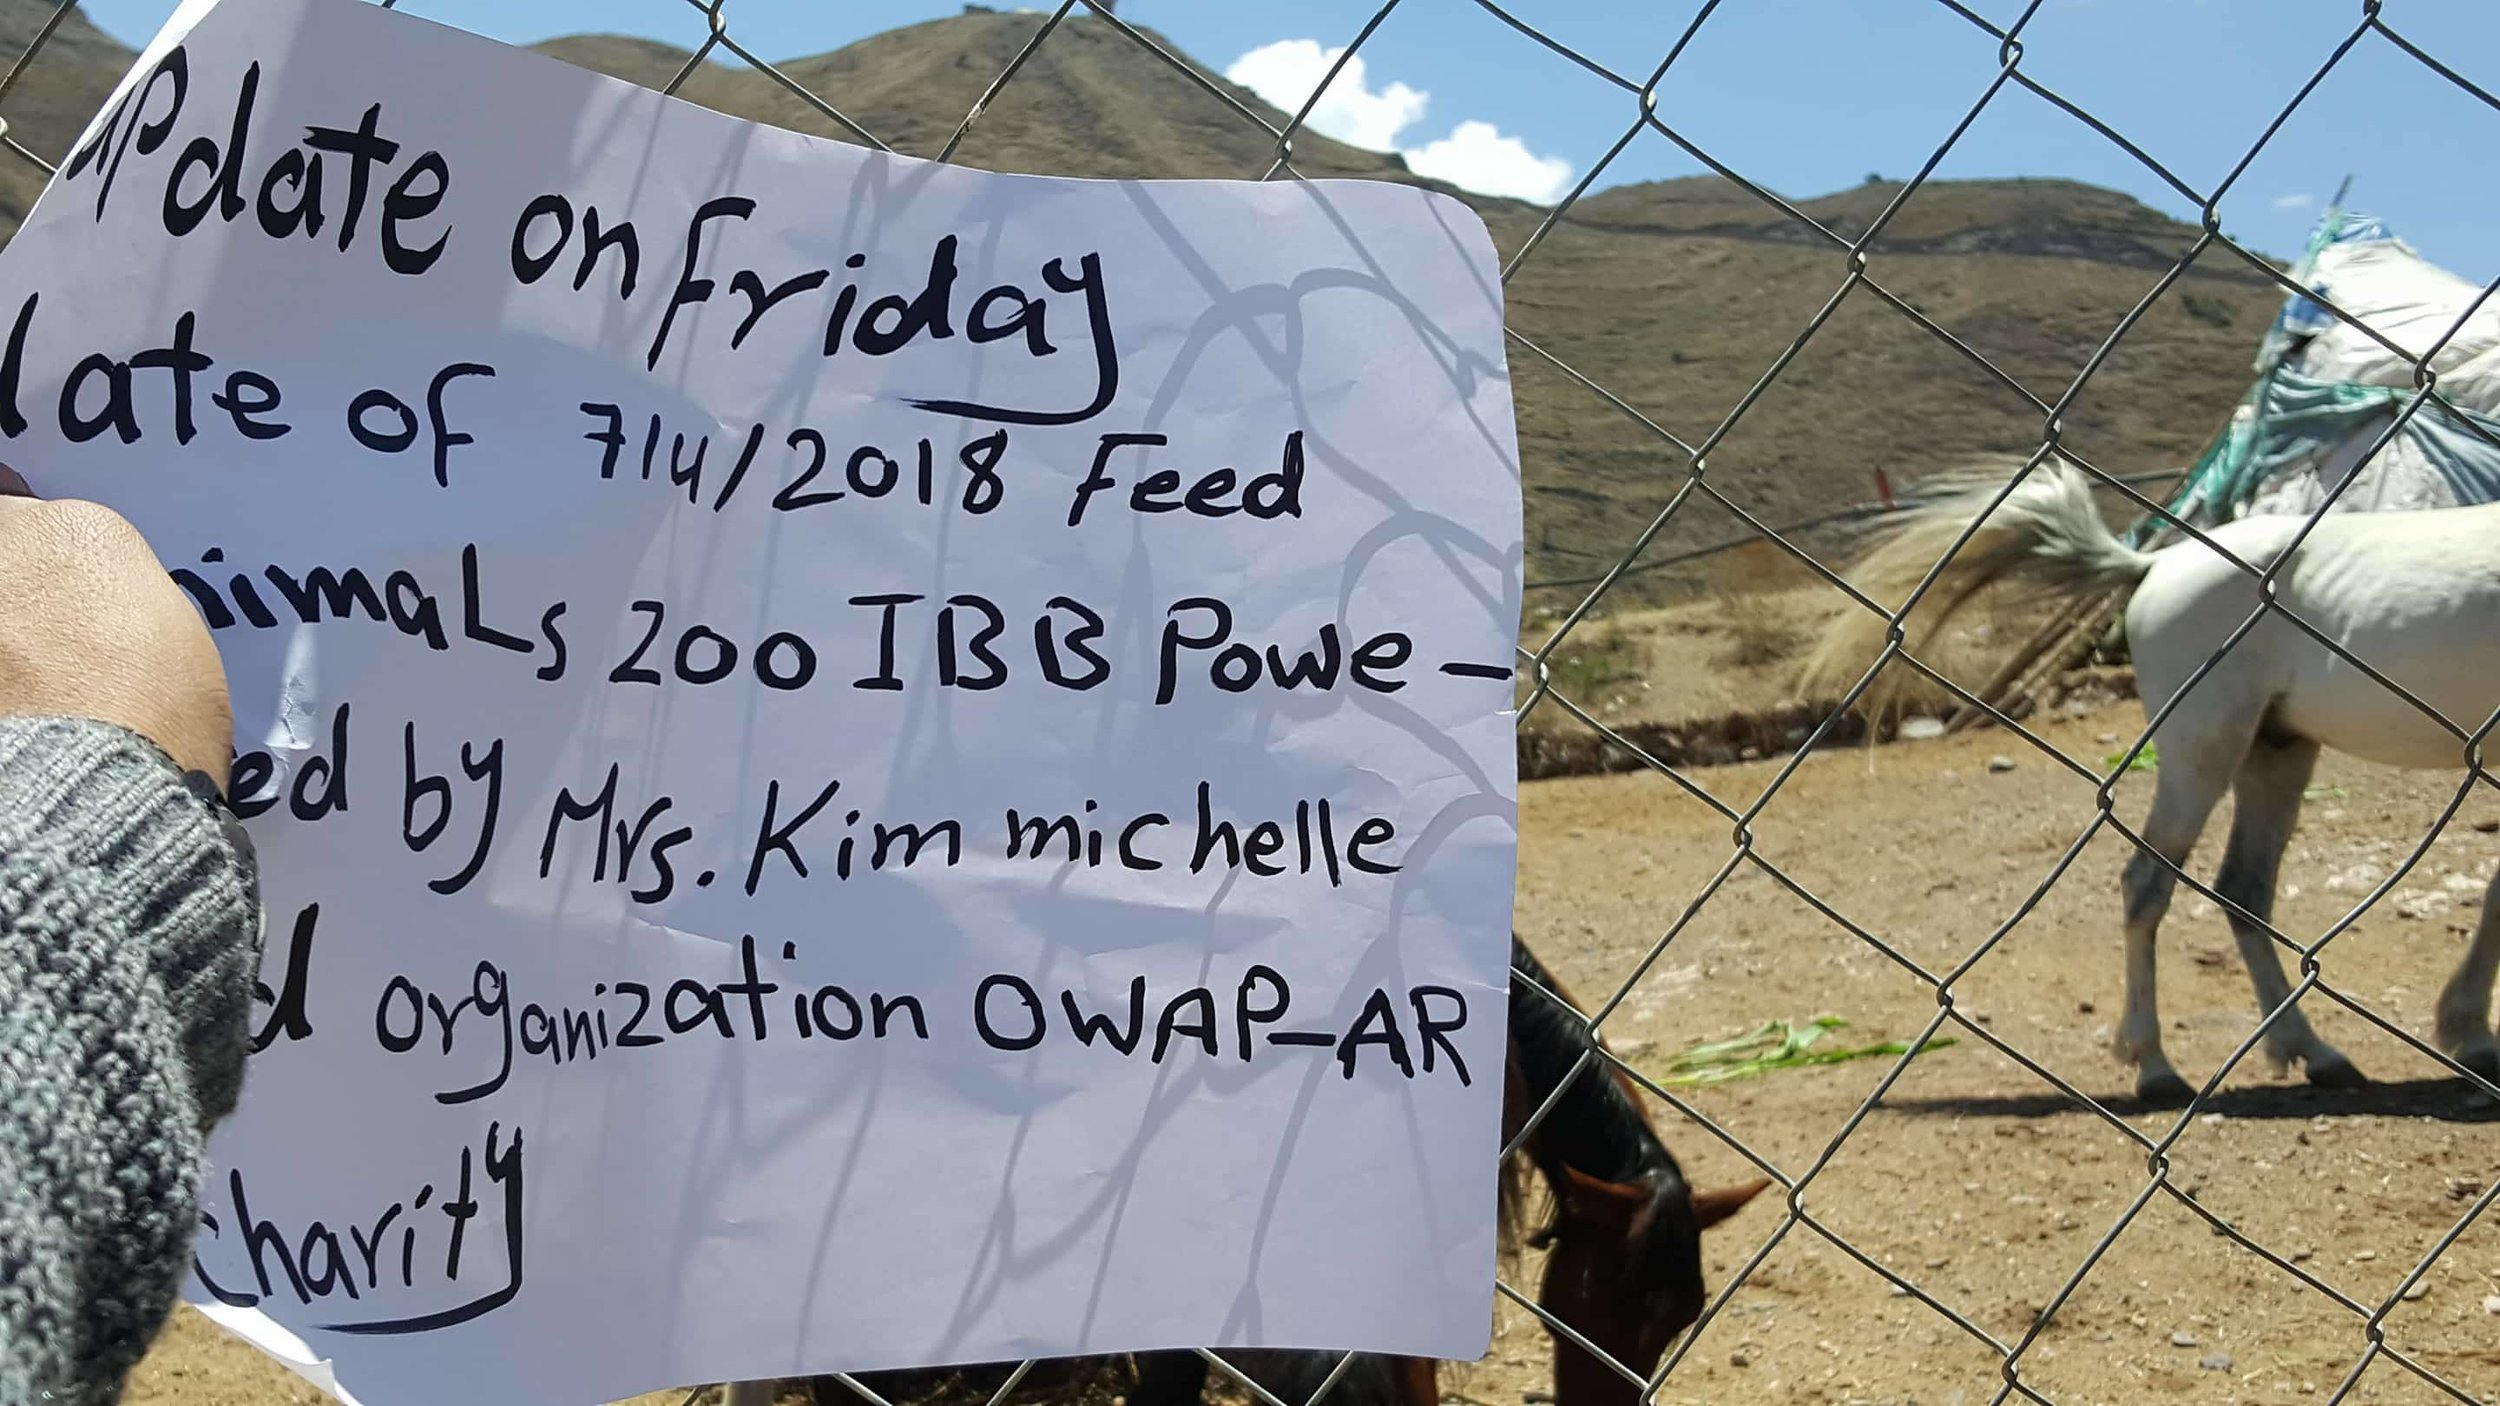 IBB ZOO YEMEN RESCUE MISSION 7 APRIL 2018 TODAY DELIVERY OF HERBIVORE SUPPLIES FOOD AND VEG AND BANANAS by OWAP AR  with our sign horses eating.jpg